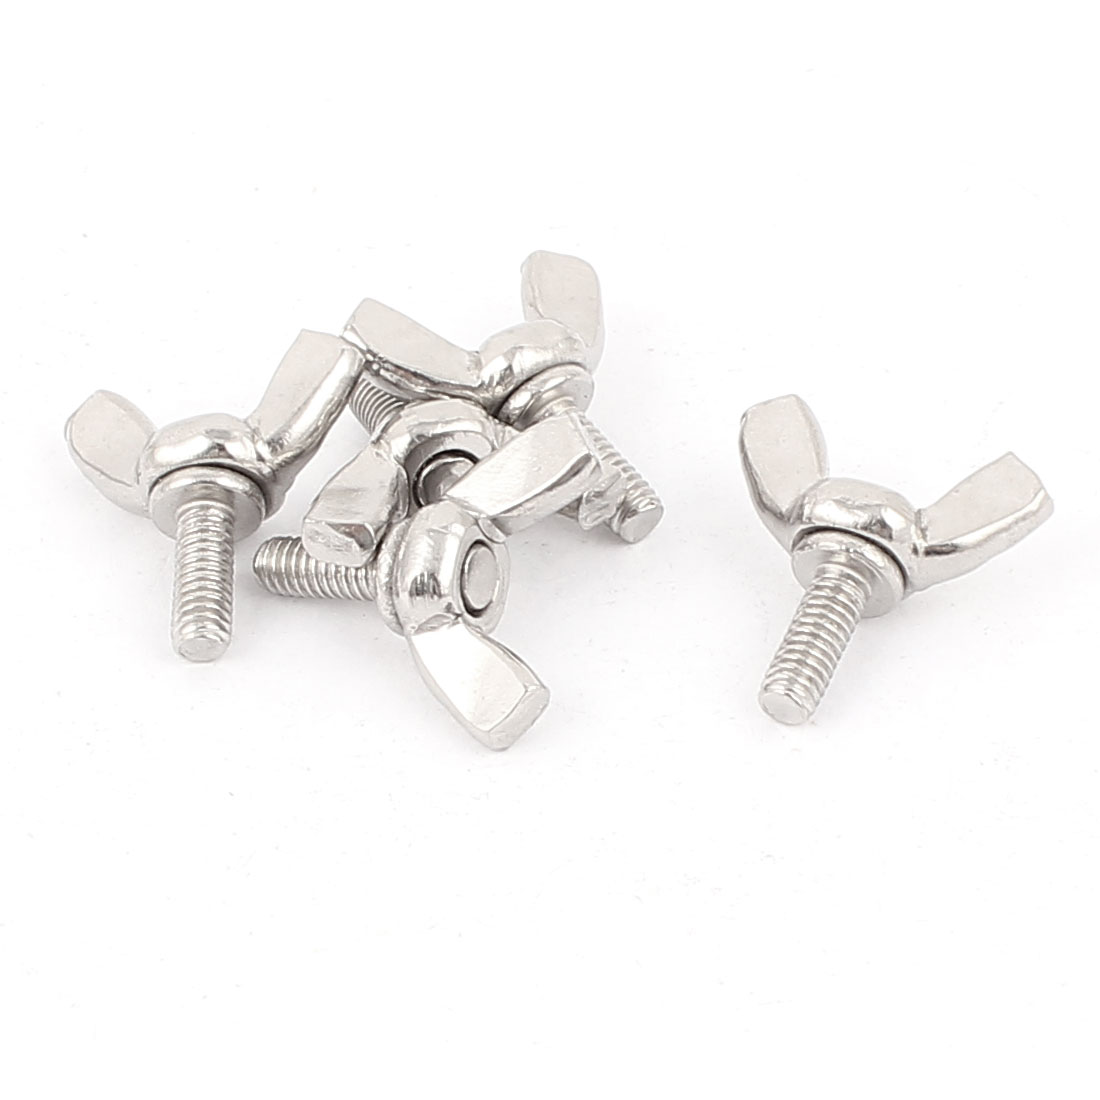 M4x10mm 0.7mm Pitch 304 Stainless Steel Wing Screw Butterfly Bolt 5pcs